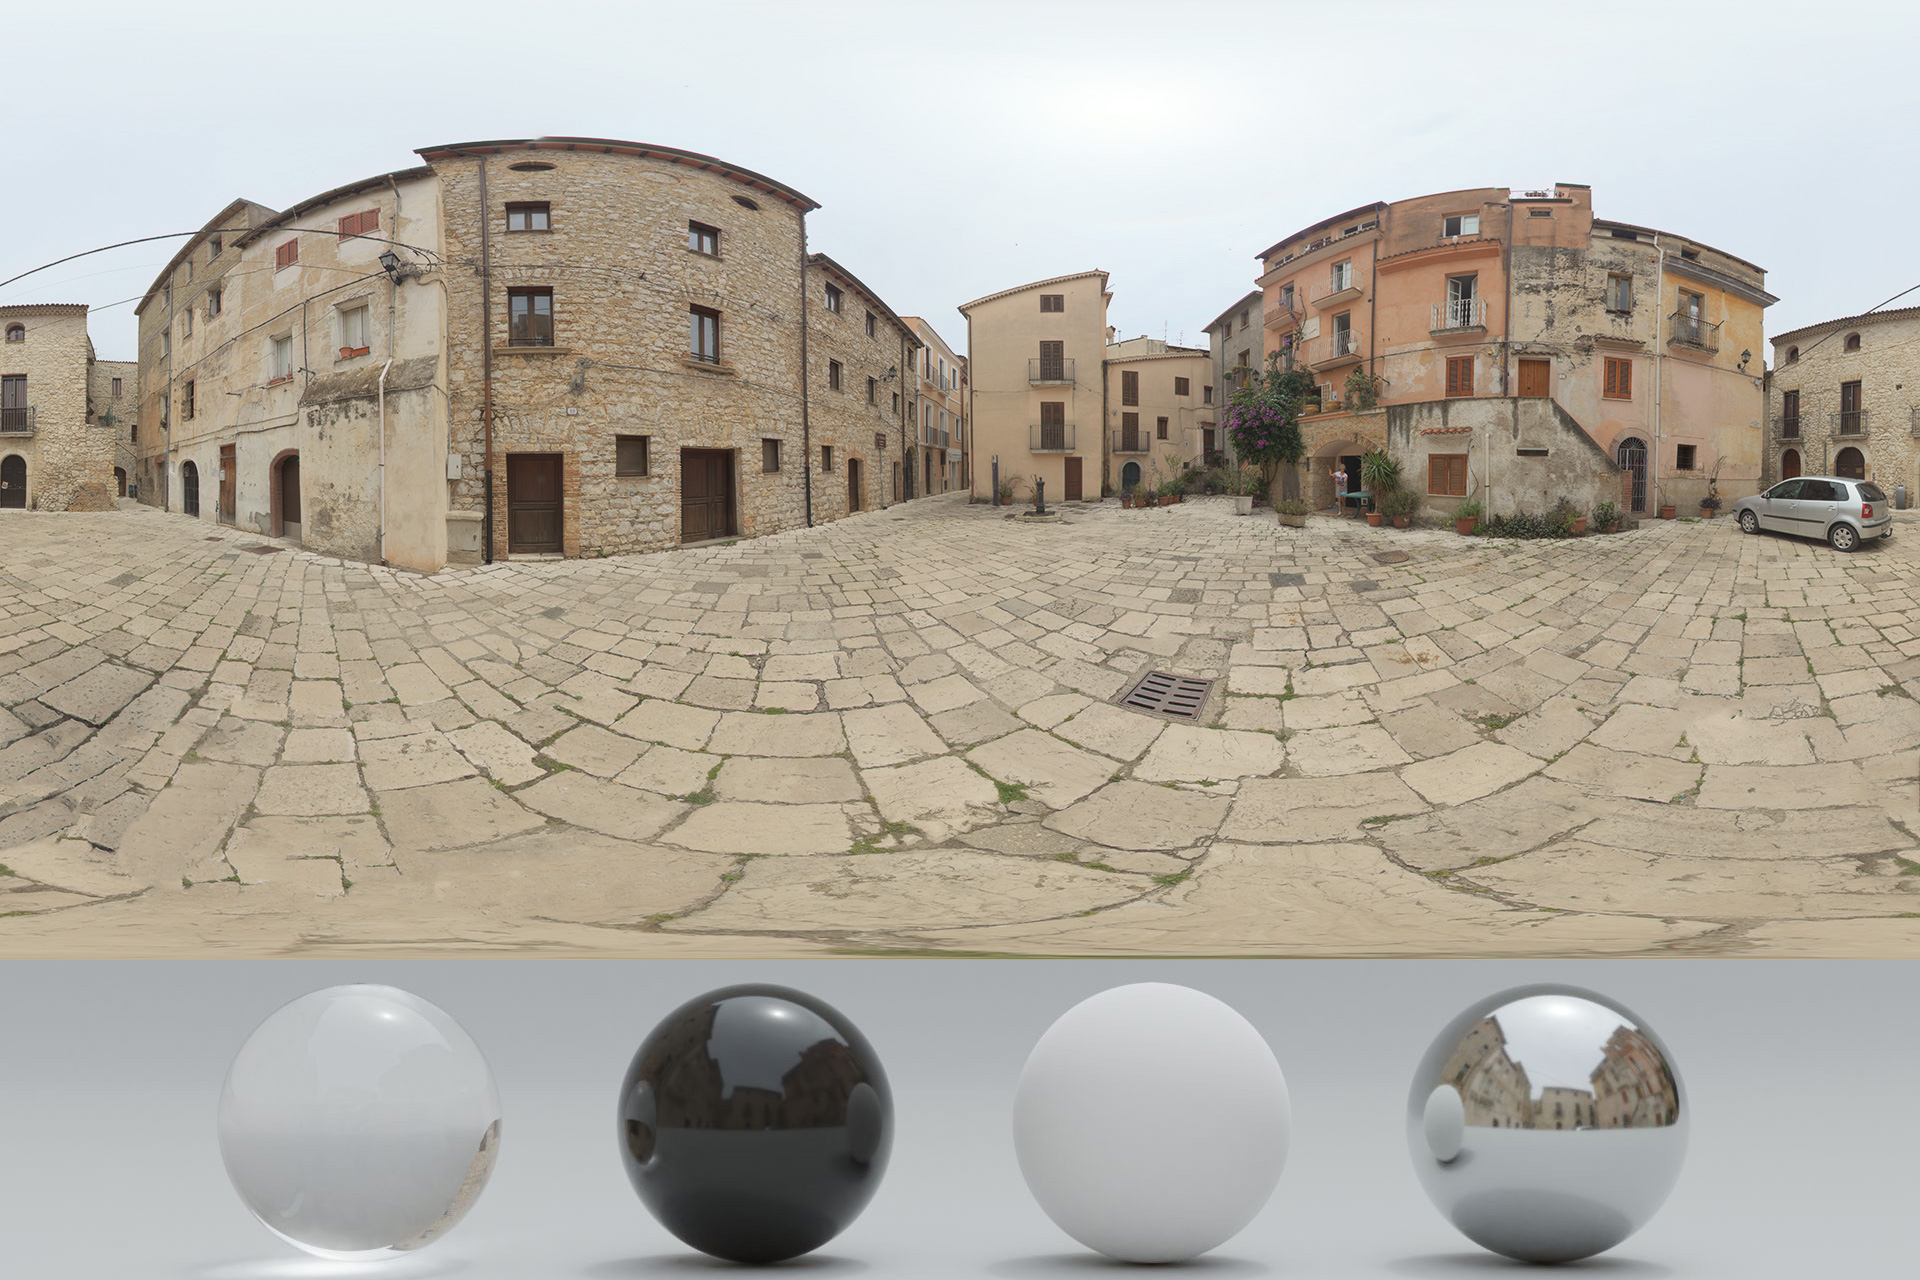 HDRi – Buildings and Clouds